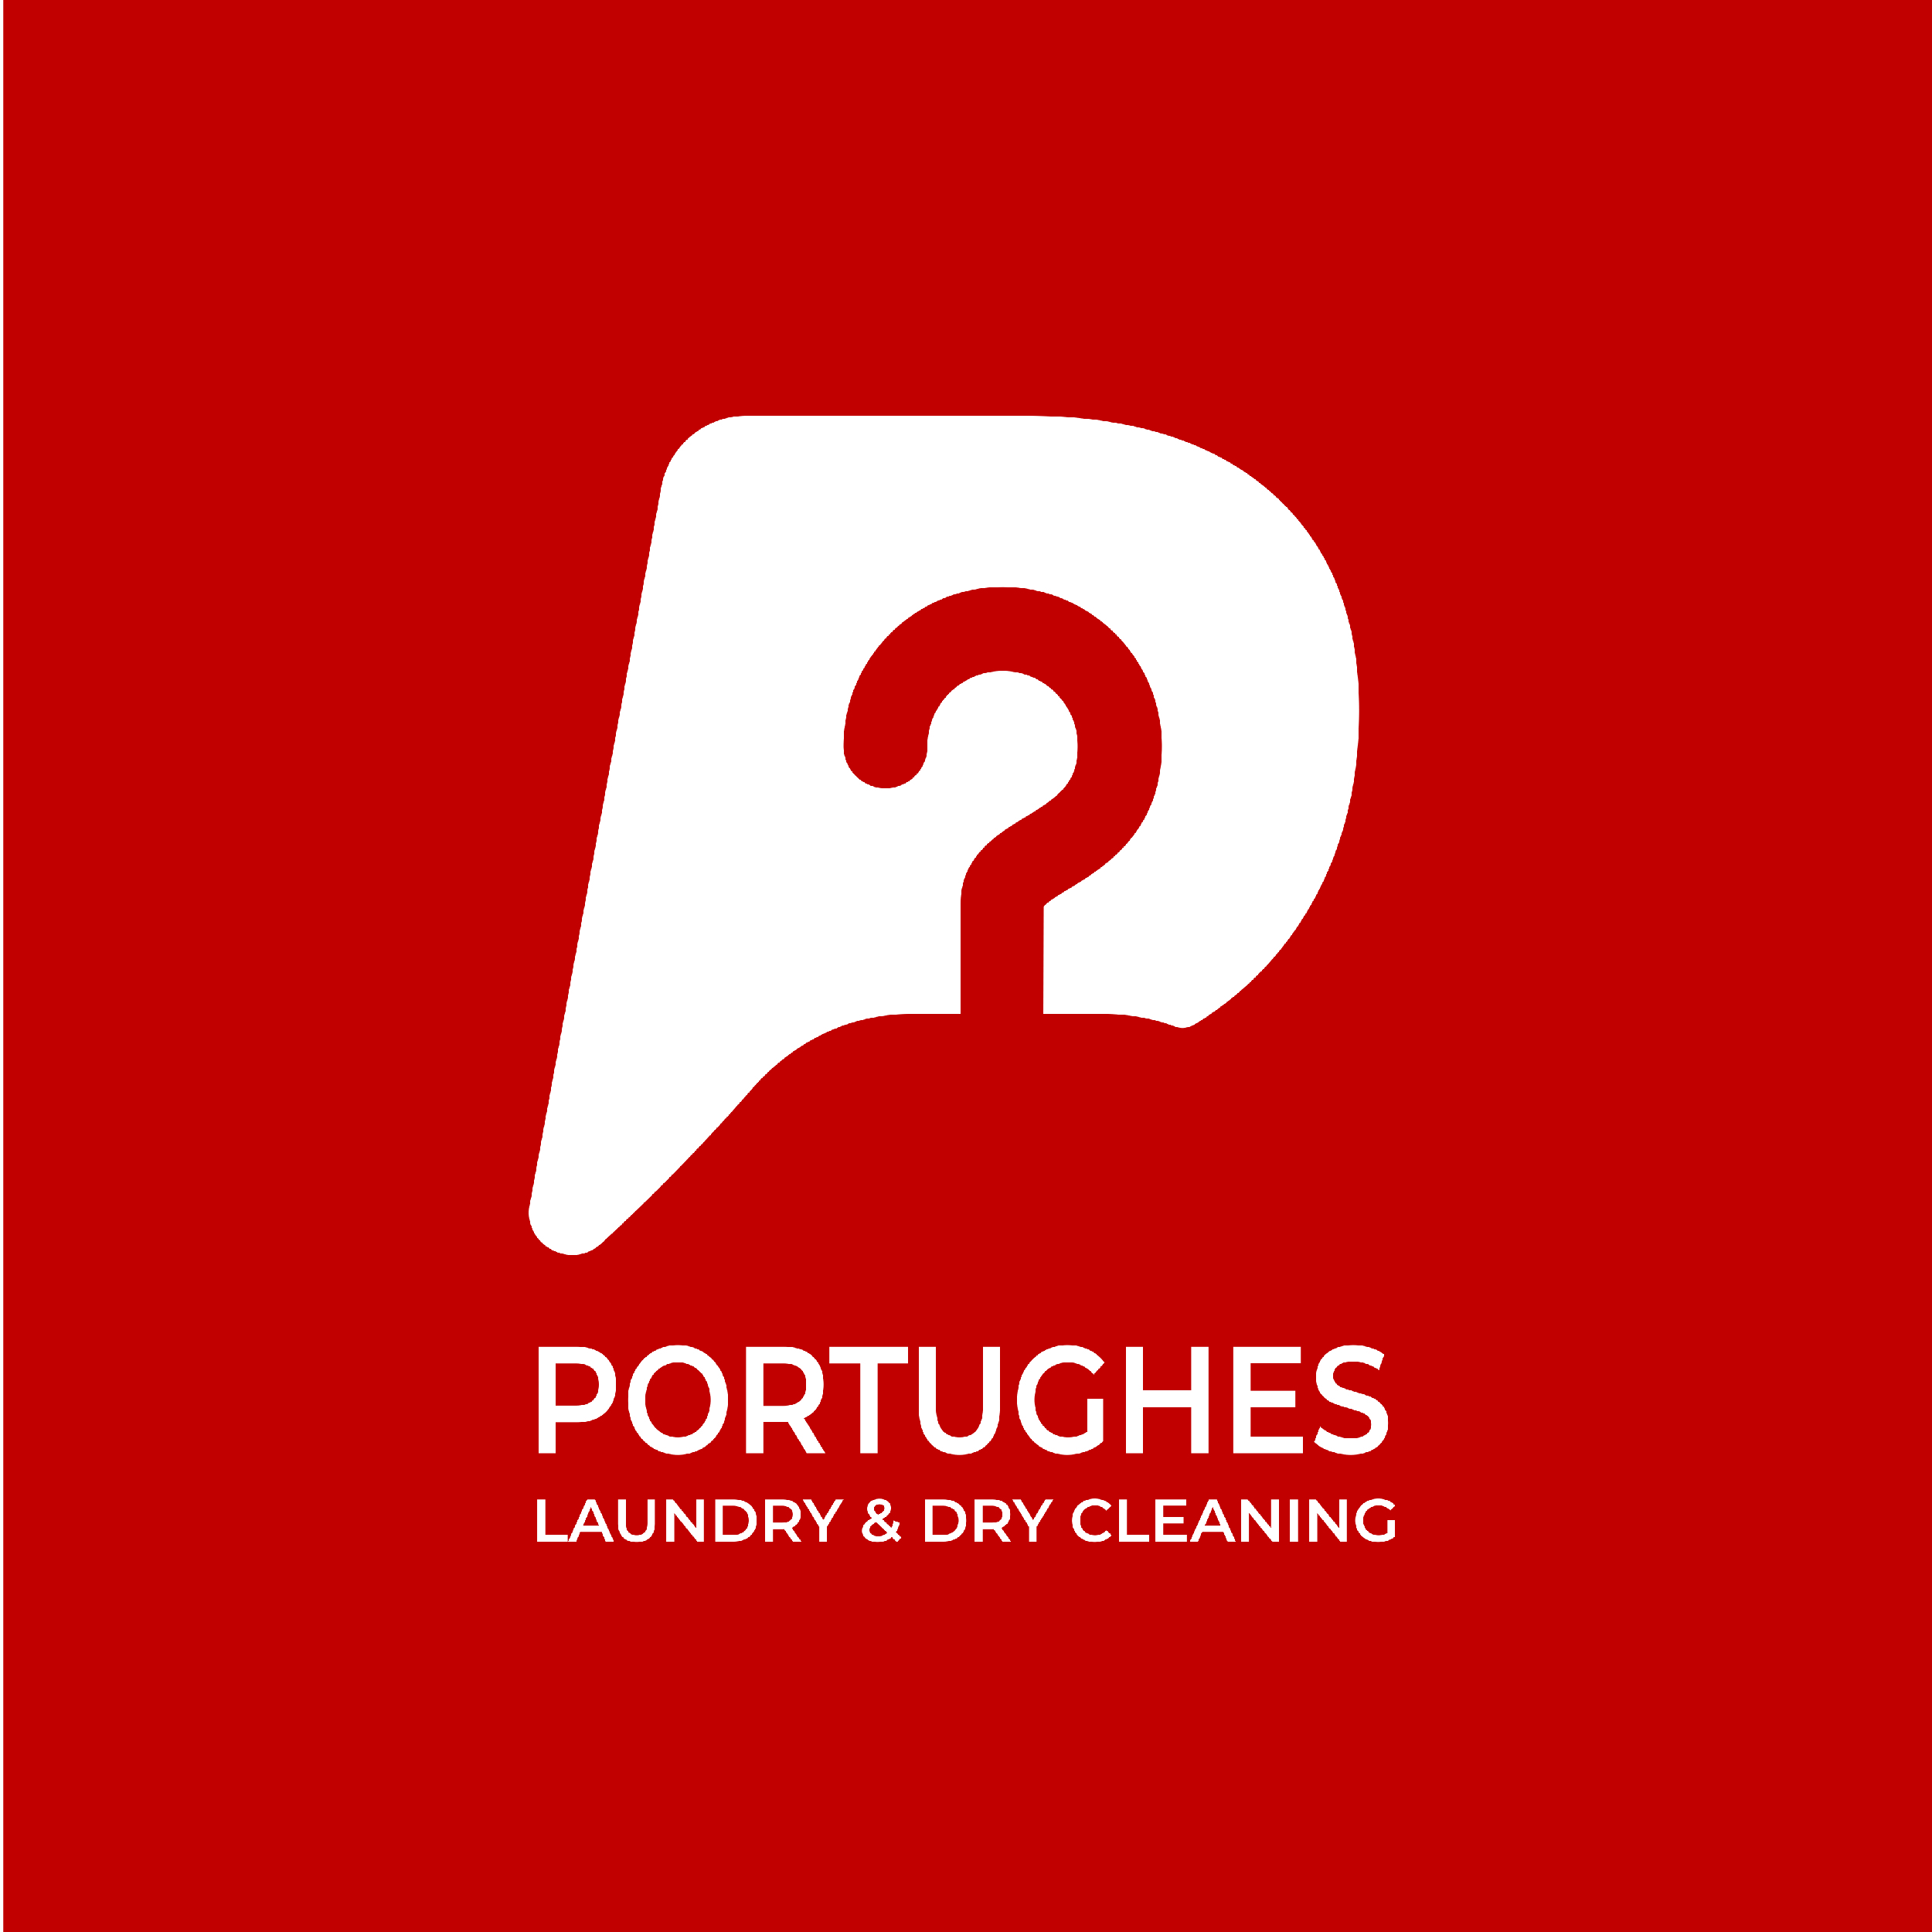 Portughes Dry Cleaning